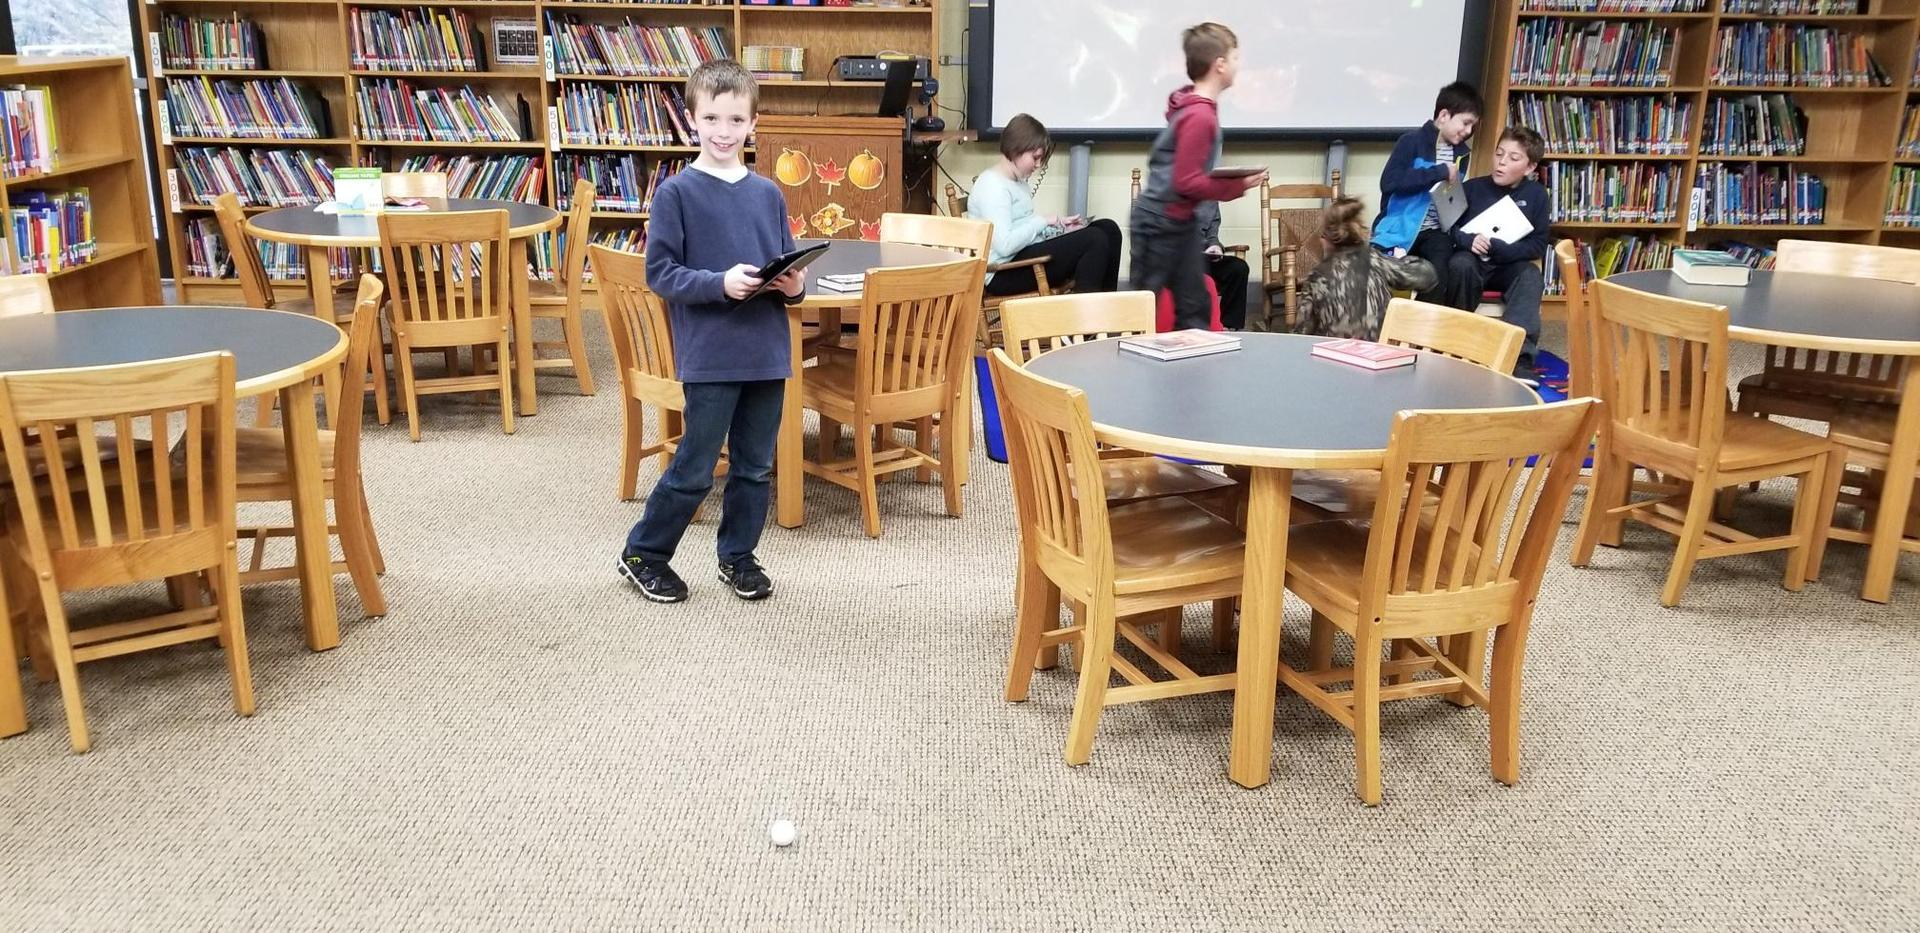 Using our Sphero Mini